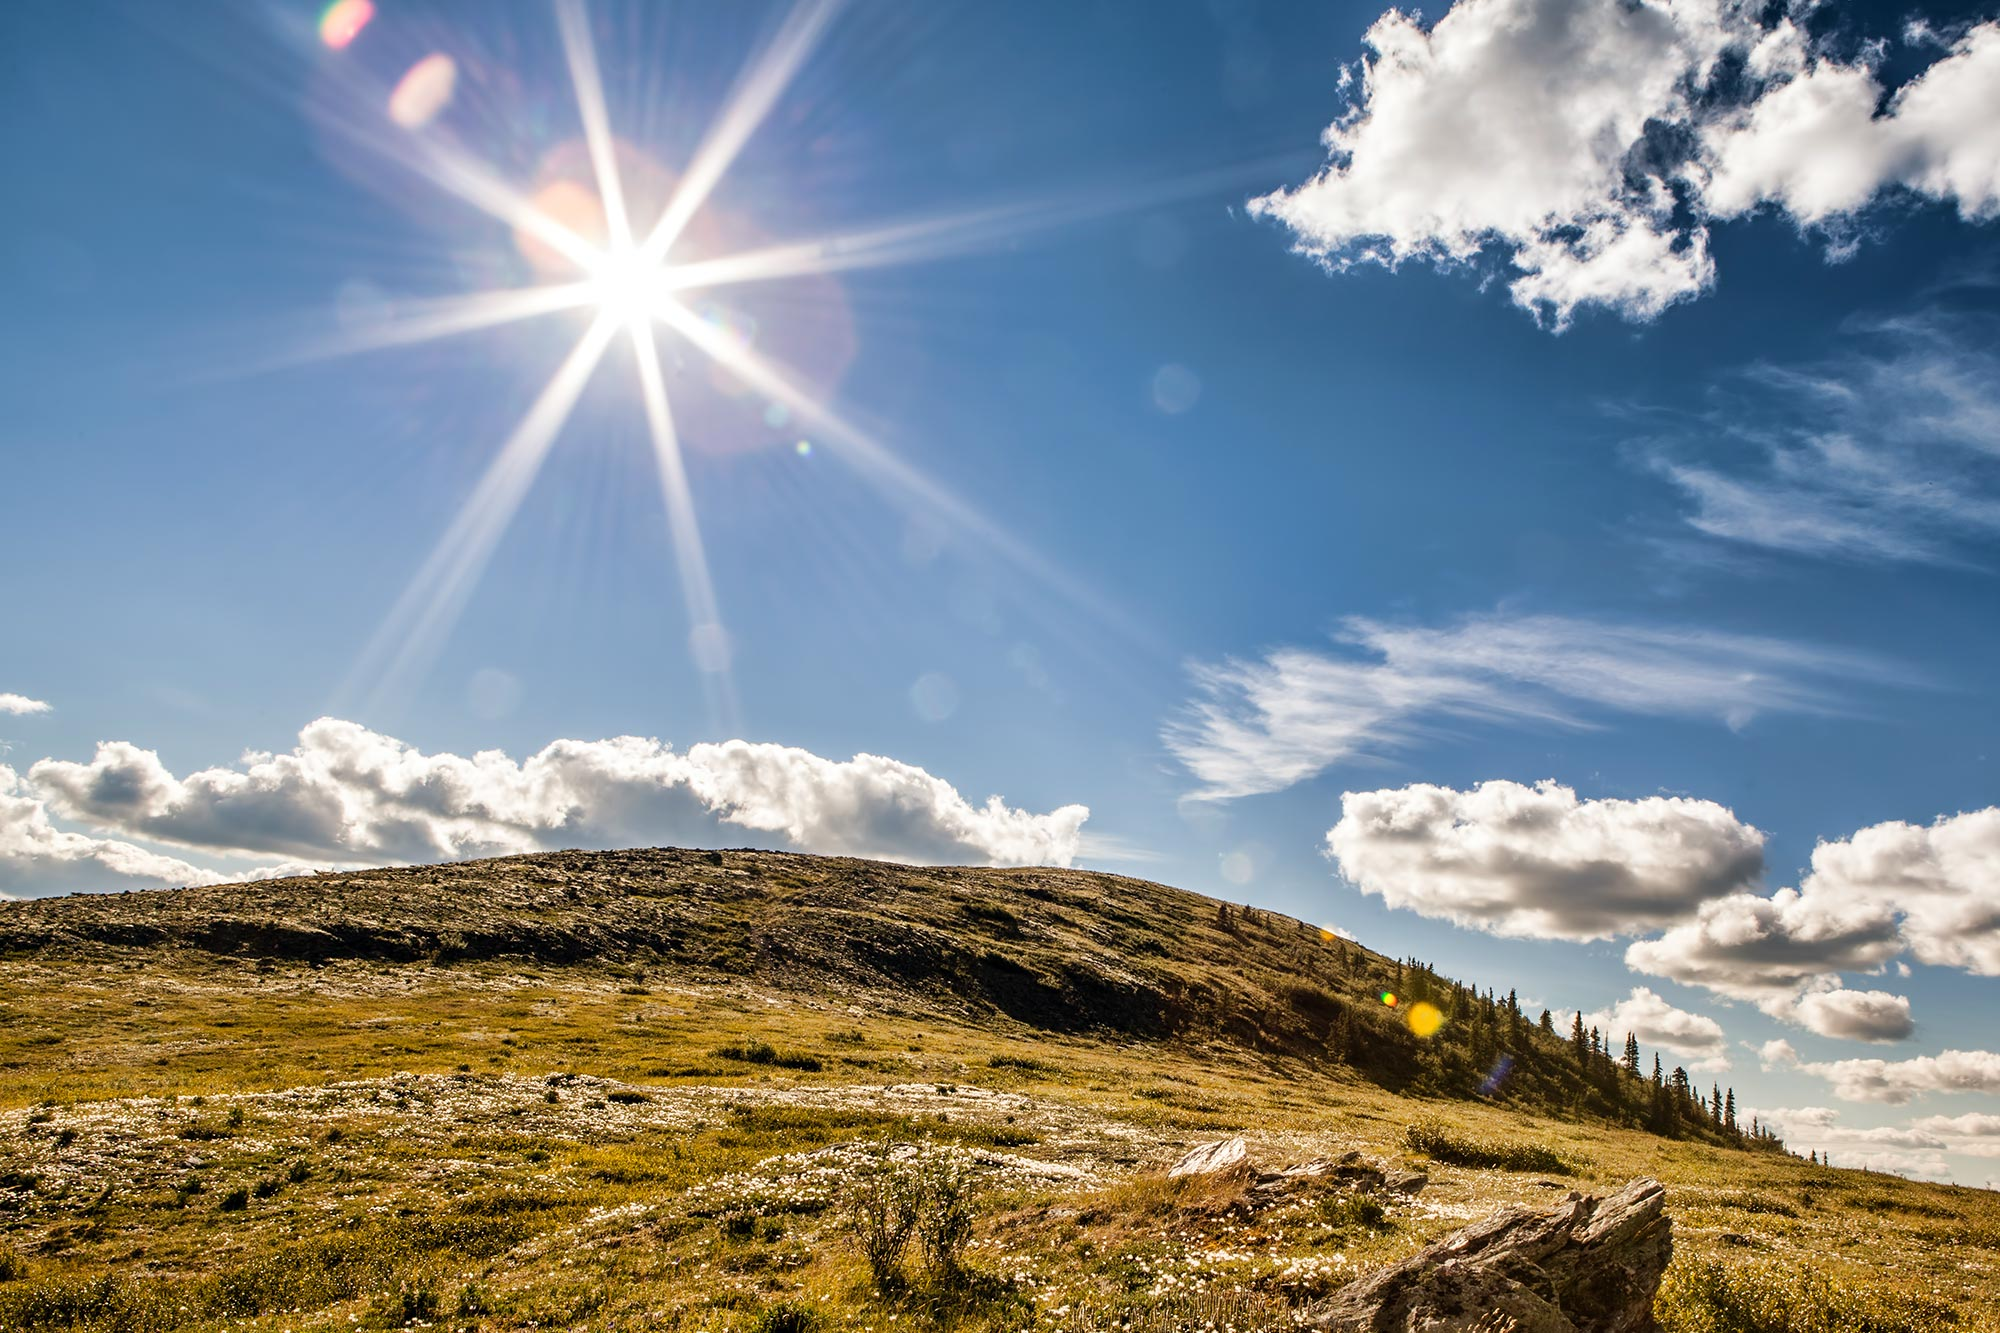 Harnessing the Entire Spectrum of Sunlight to Make Solar Energy More Efficient - SciTechDaily